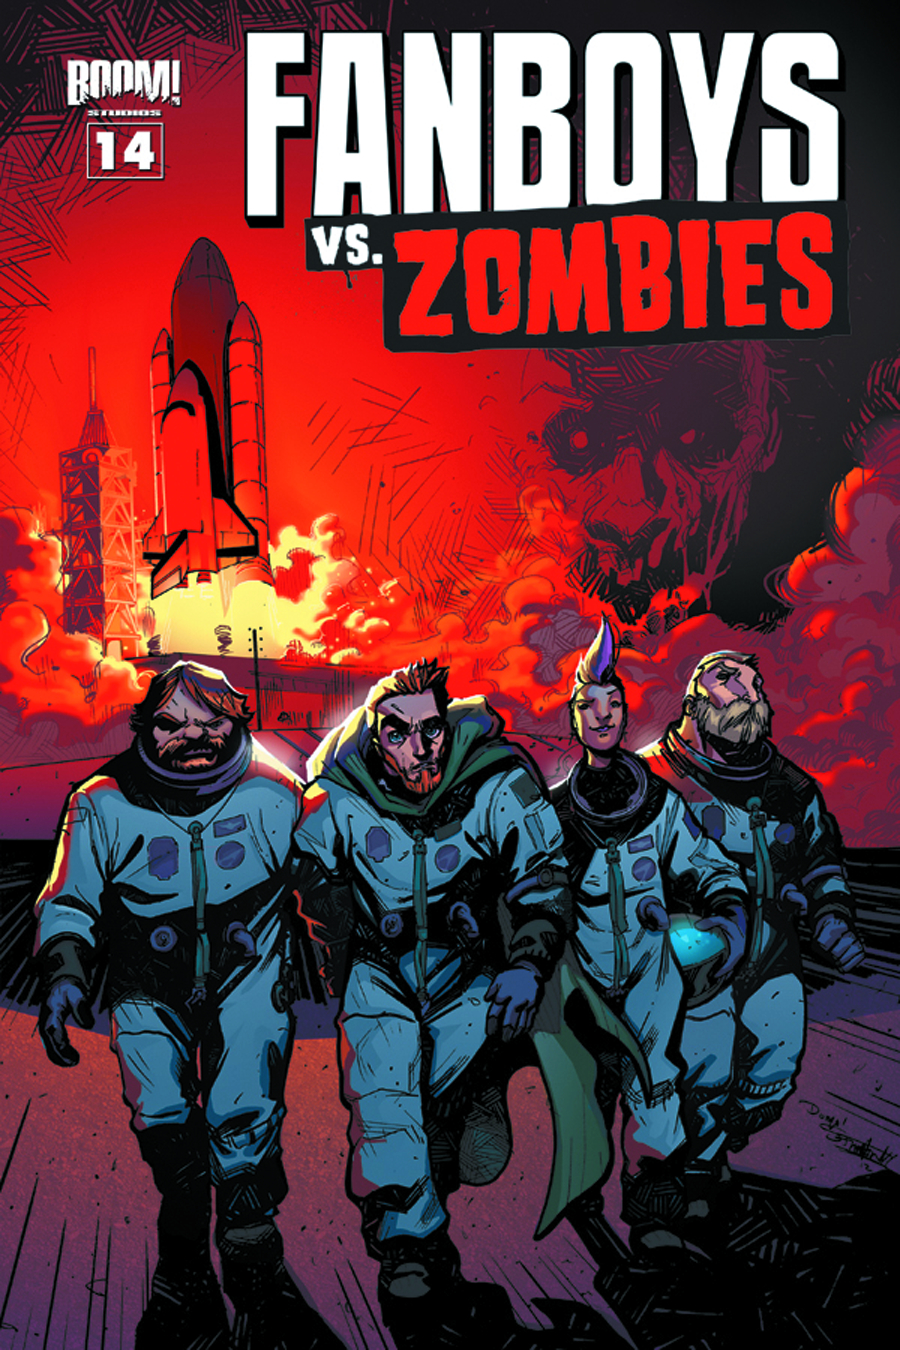 FANBOYS VS ZOMBIES #14